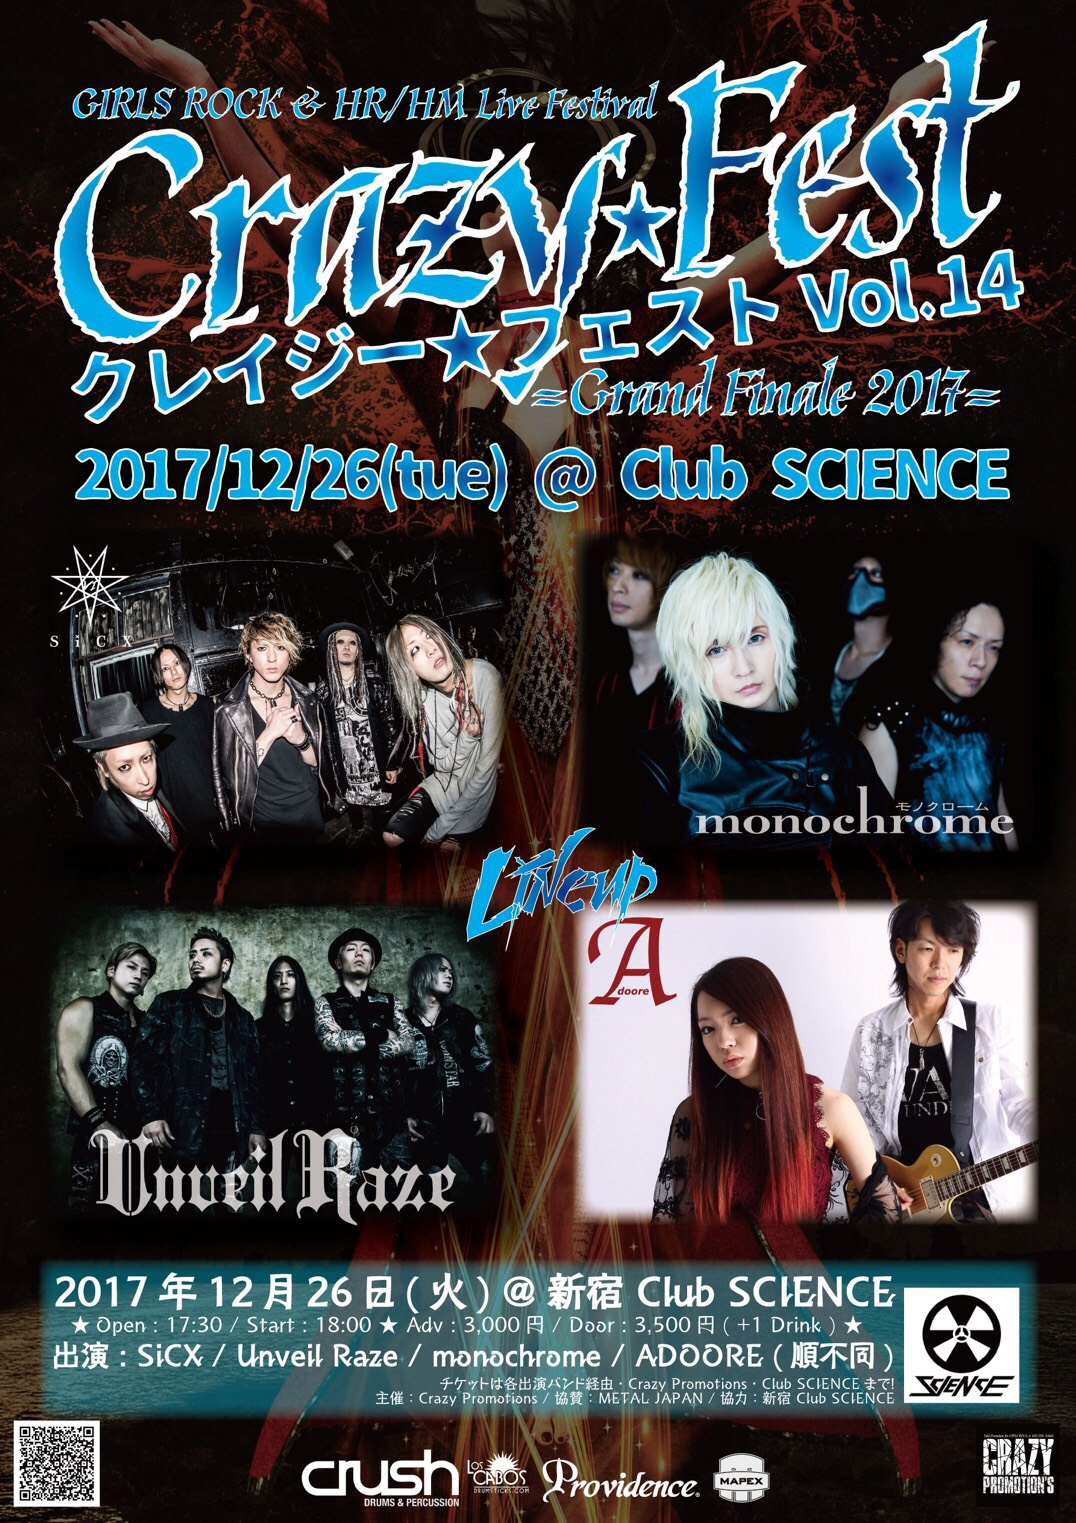 2017.12.26(tue) 新宿SCIENCE